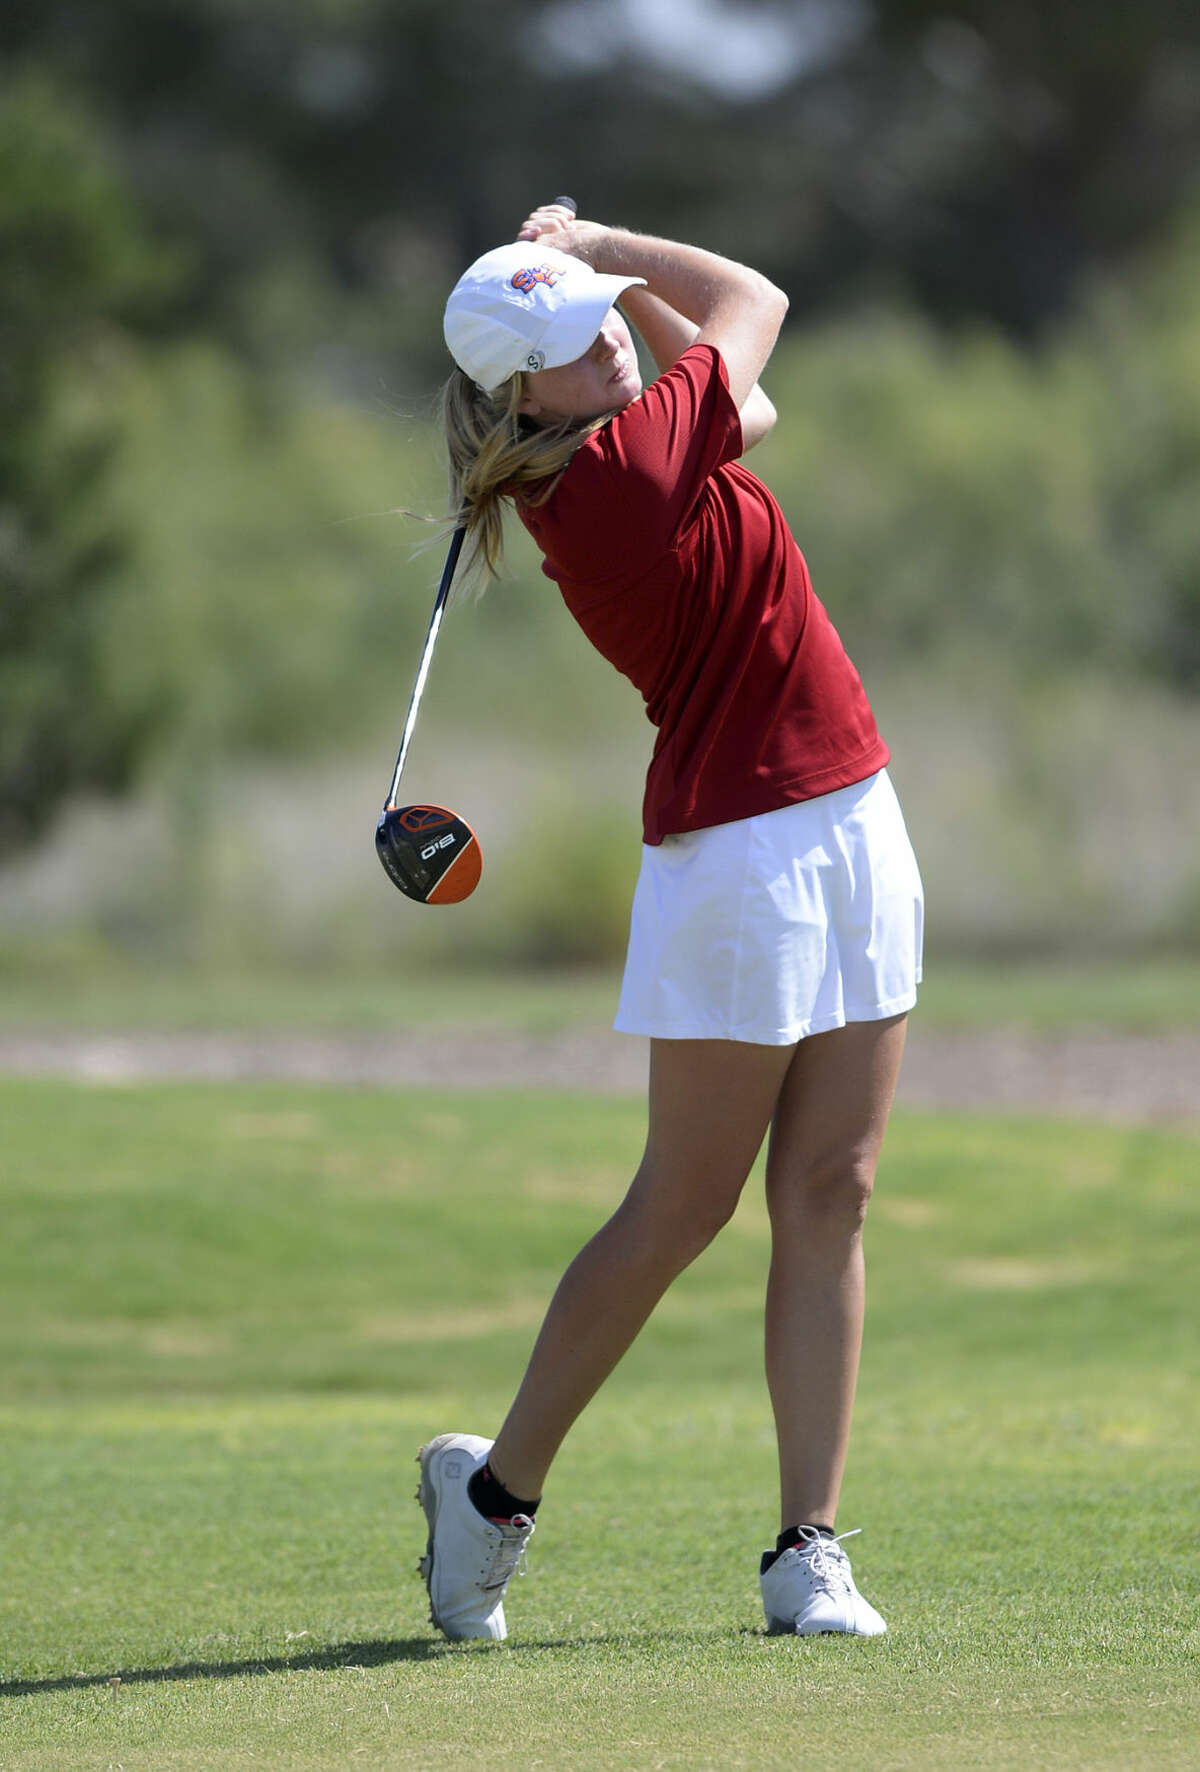 Sarah Black tees off during the second round of the Midland Women's City Golf Tournament on Tuesday, July 14, 2015 at Hogan Park Golf Club. James Durbin/Reporter-Telegram